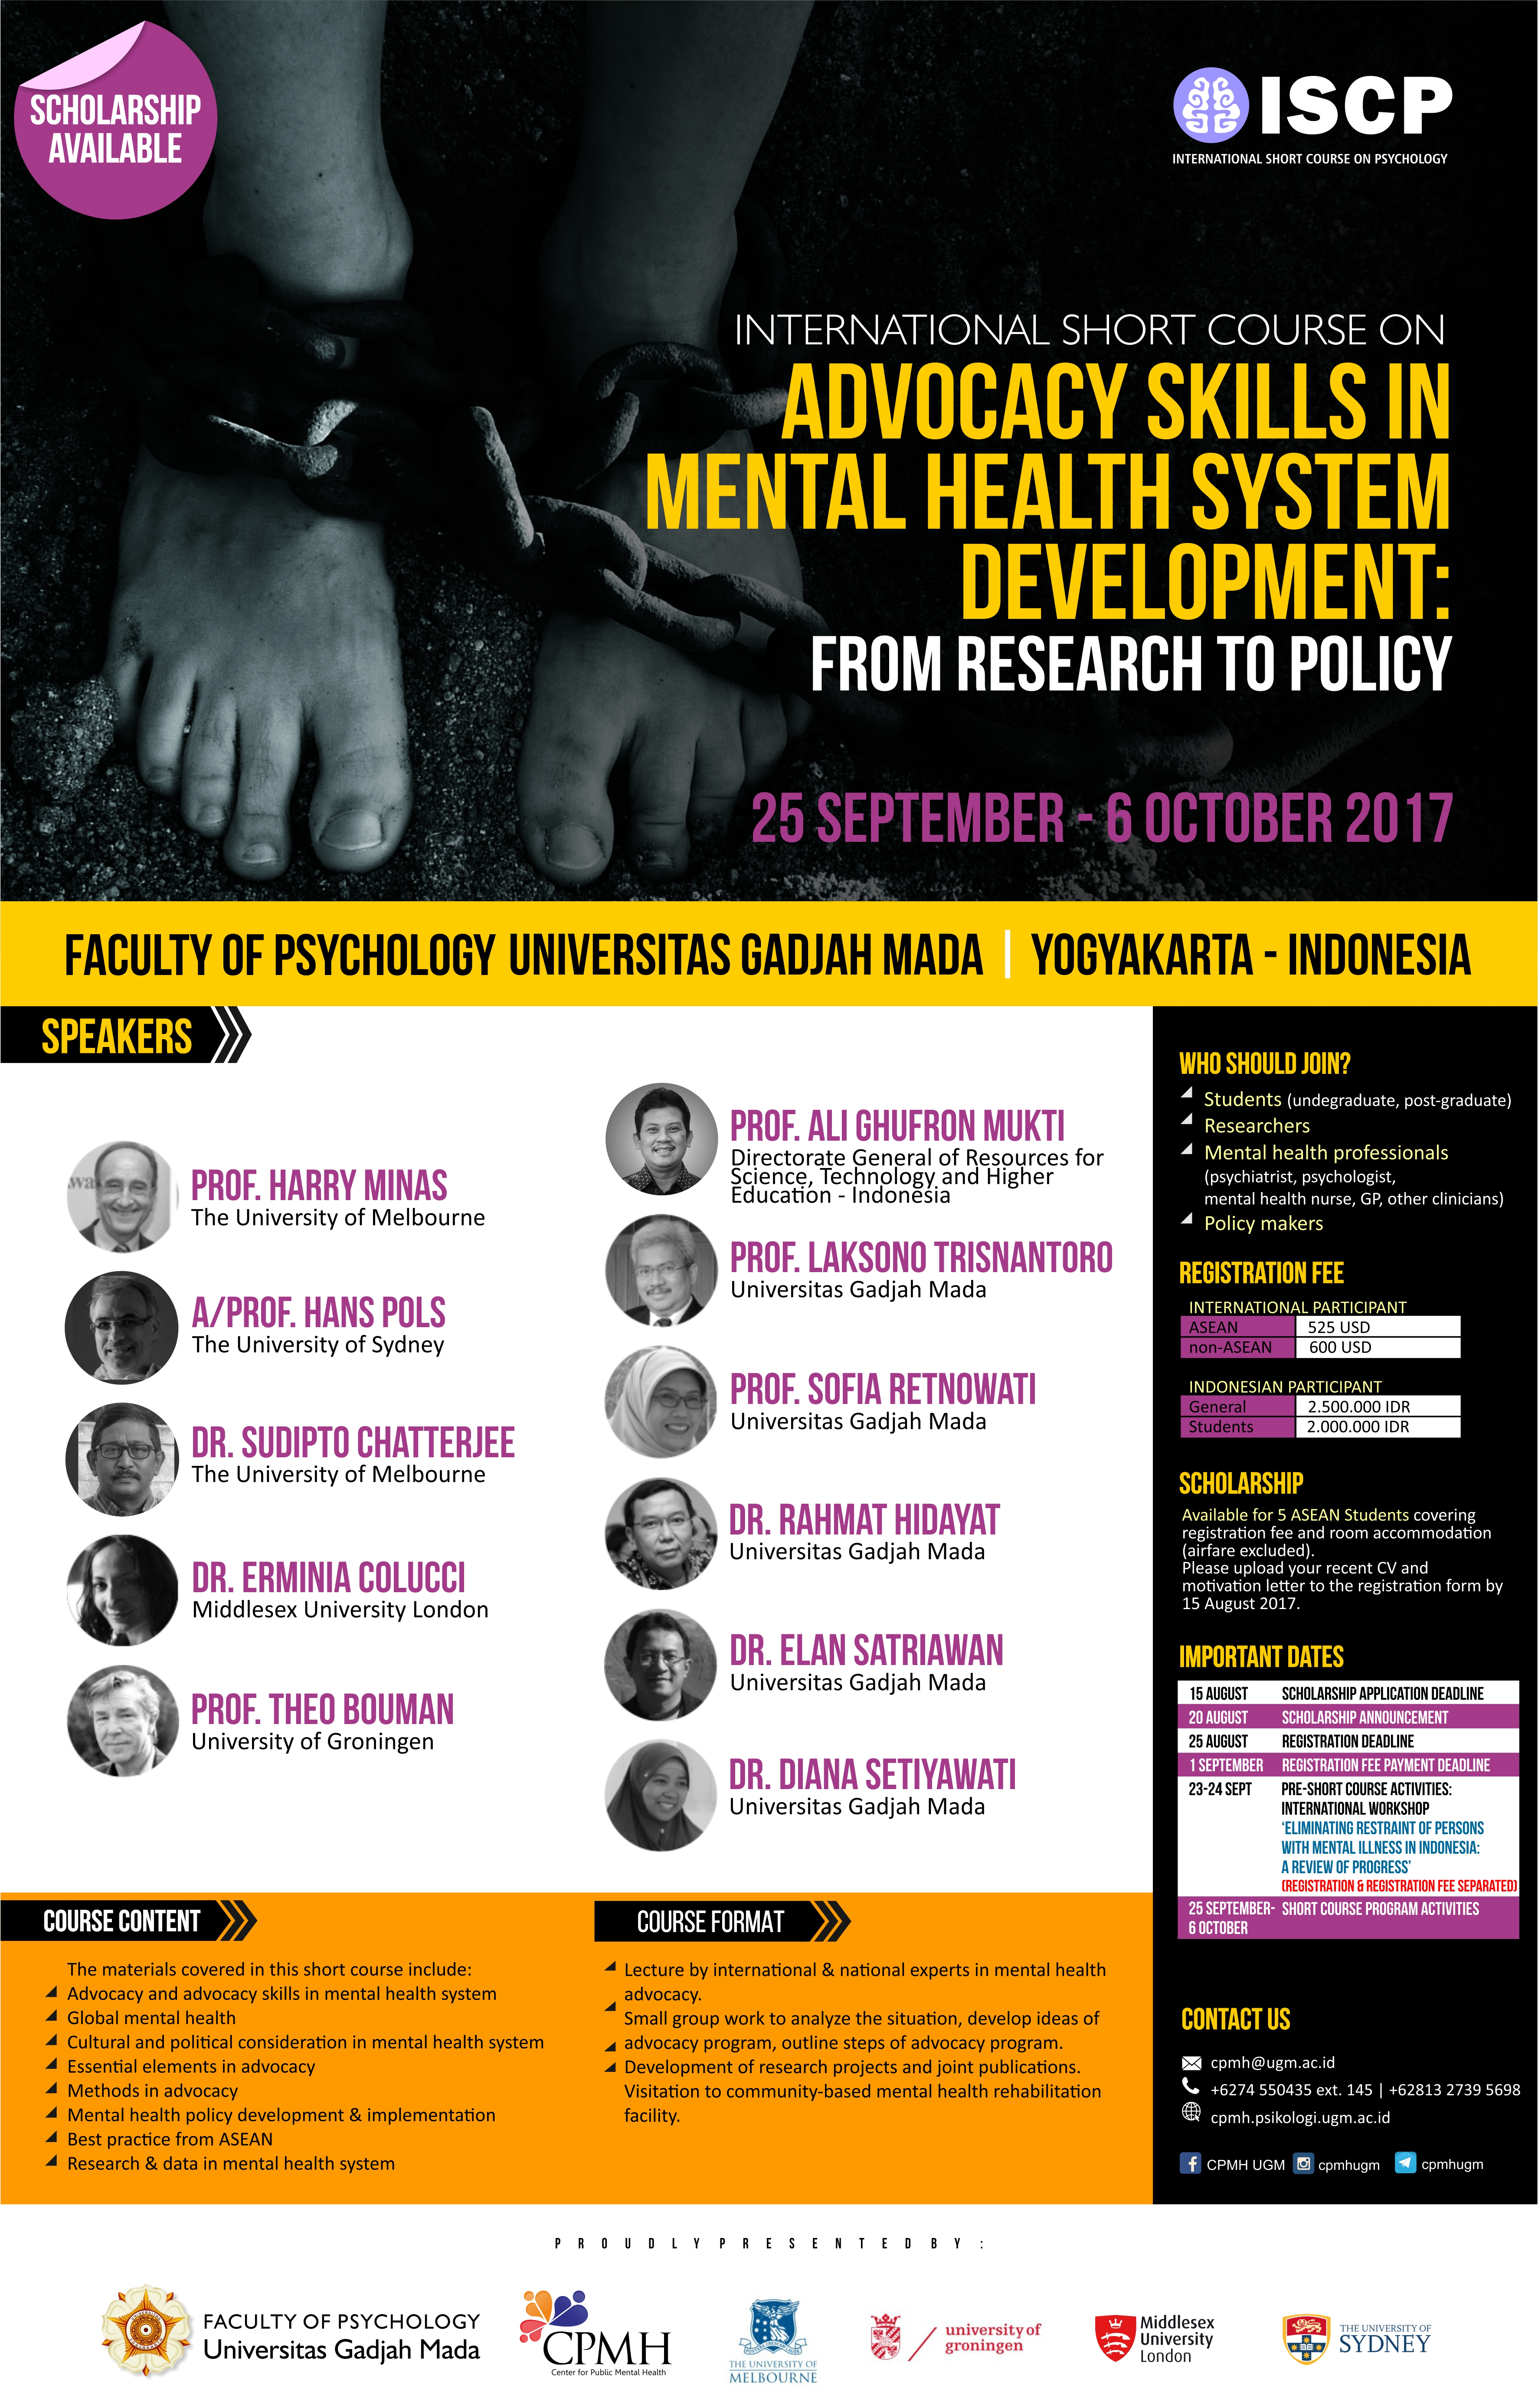 International Short Course on  Advocacy Skills in Mental Health System Development: from Research to Policy